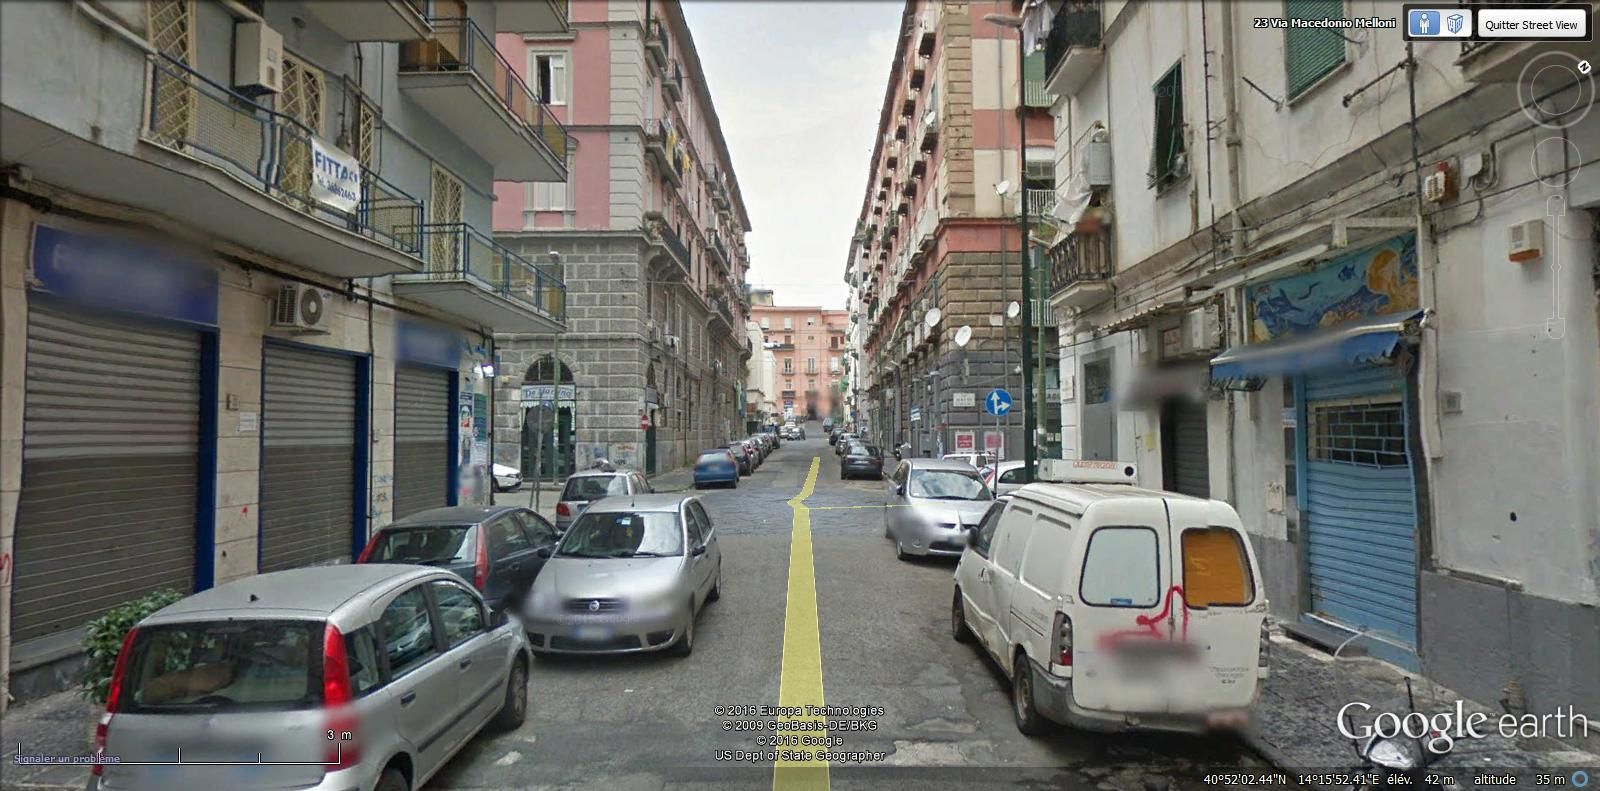 via Macedonio Melloni